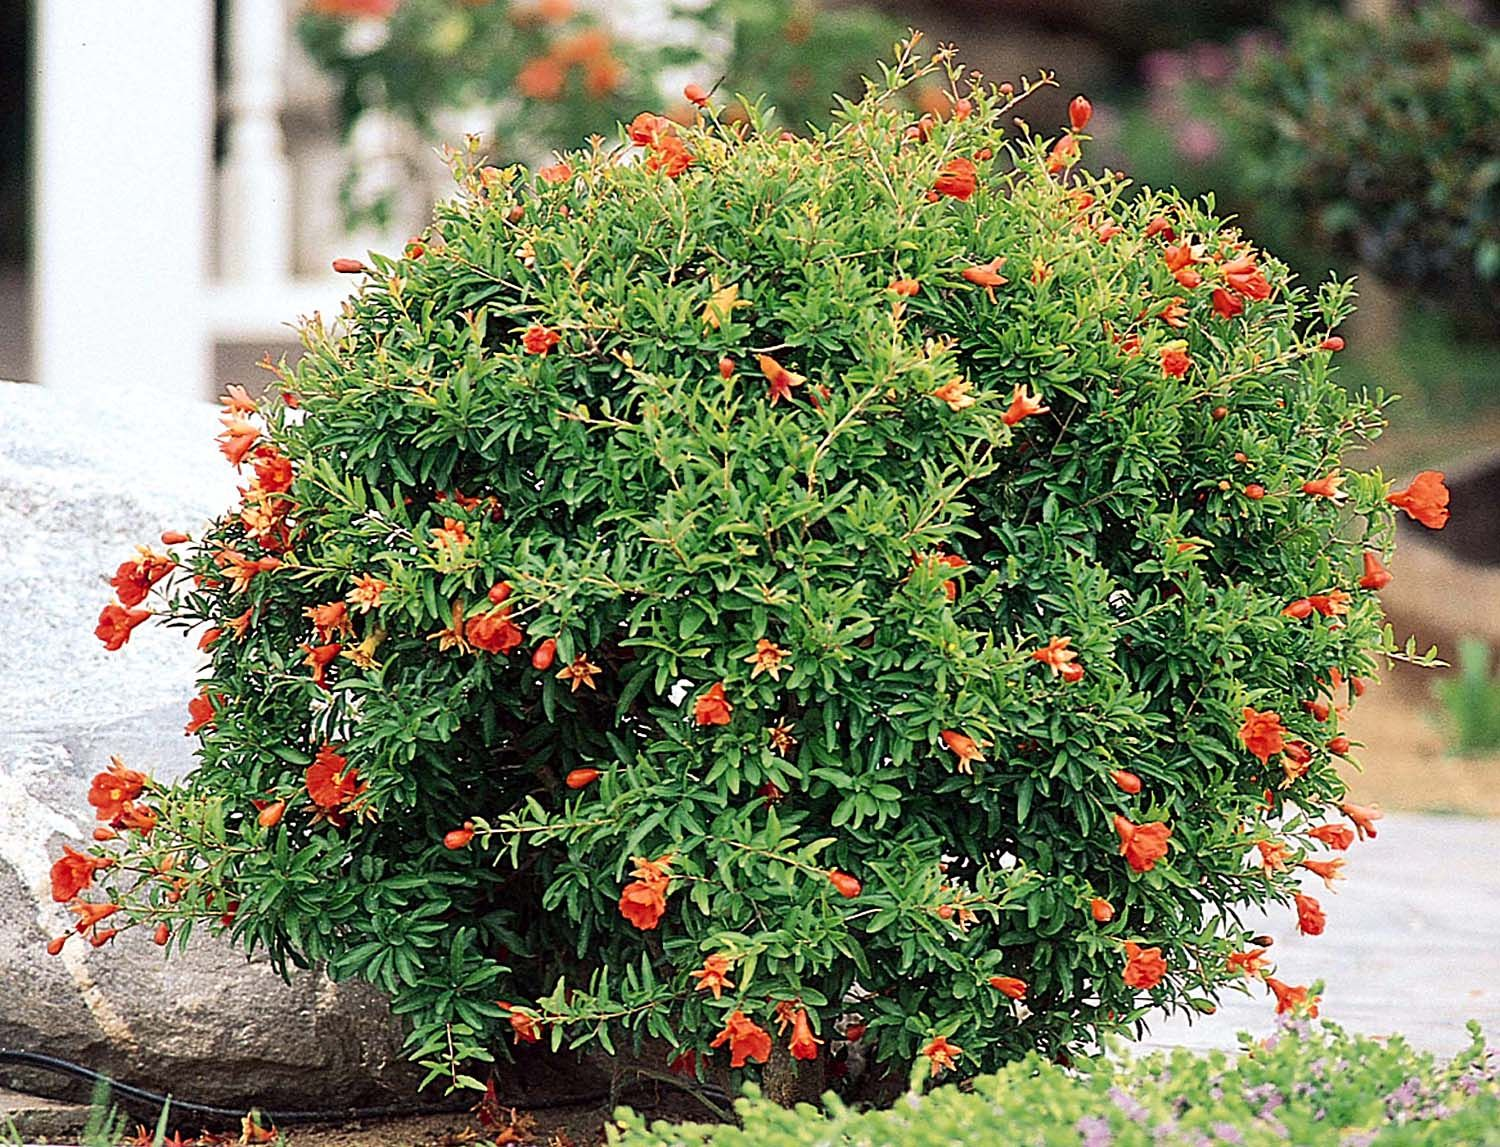 Dwarf ornamental trees for landscaping - Dwarf Pomegranate This Compact Little Shrub Will Show Off Orange Red Blooms In Spring